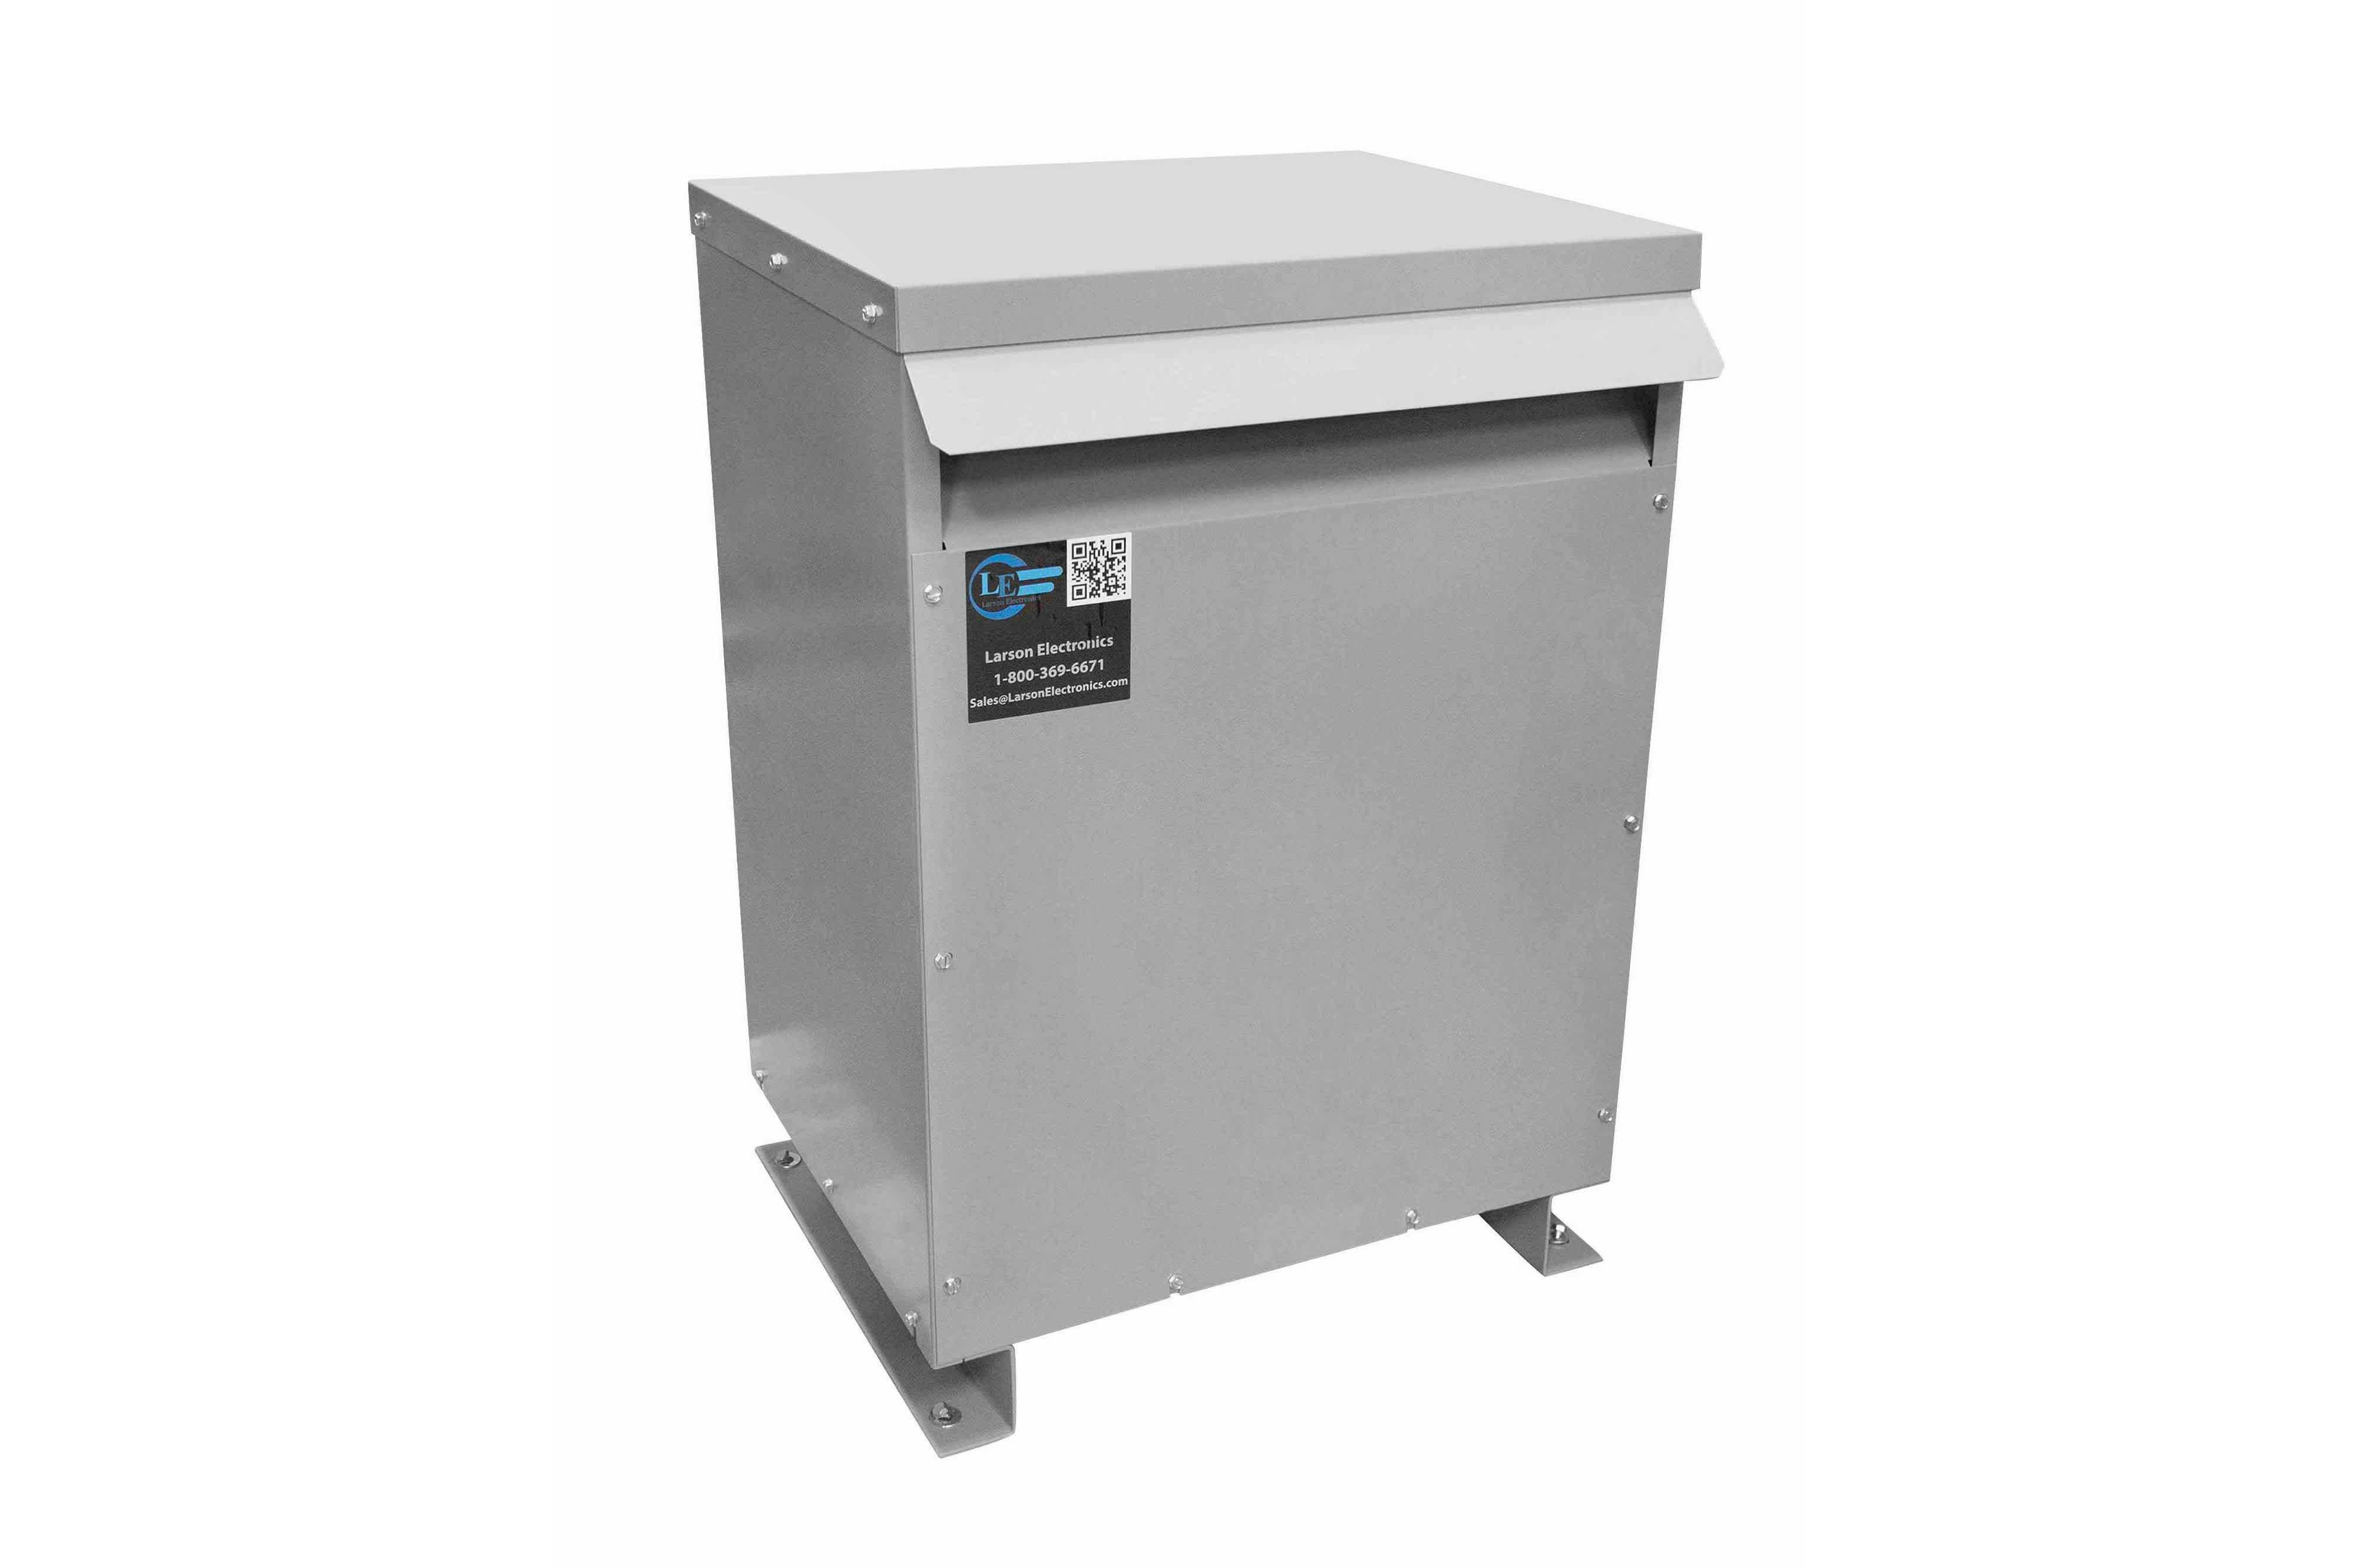 125 kVA 3PH Isolation Transformer, 480V Delta Primary, 208V Delta Secondary, N3R, Ventilated, 60 Hz